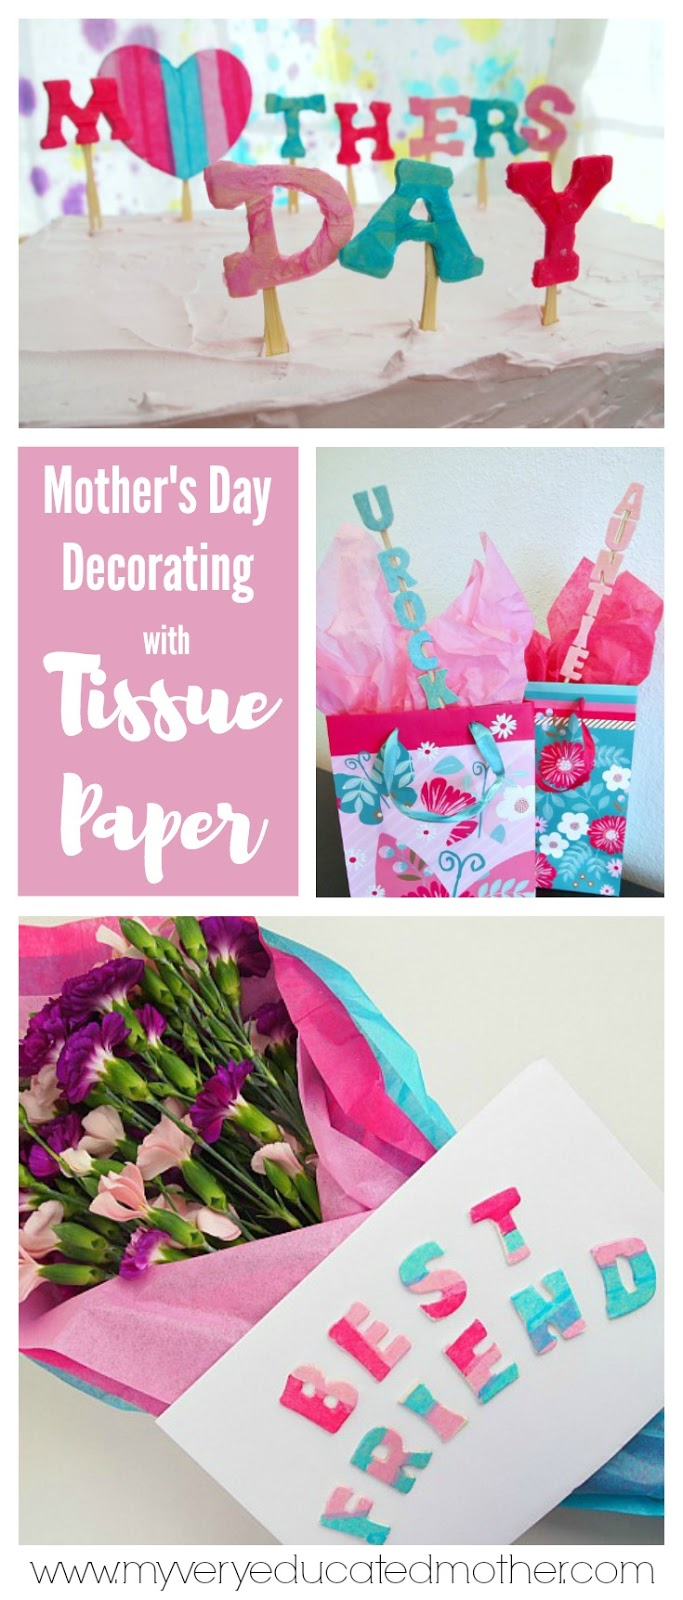 Tissue Paper Letters for Mother's Day